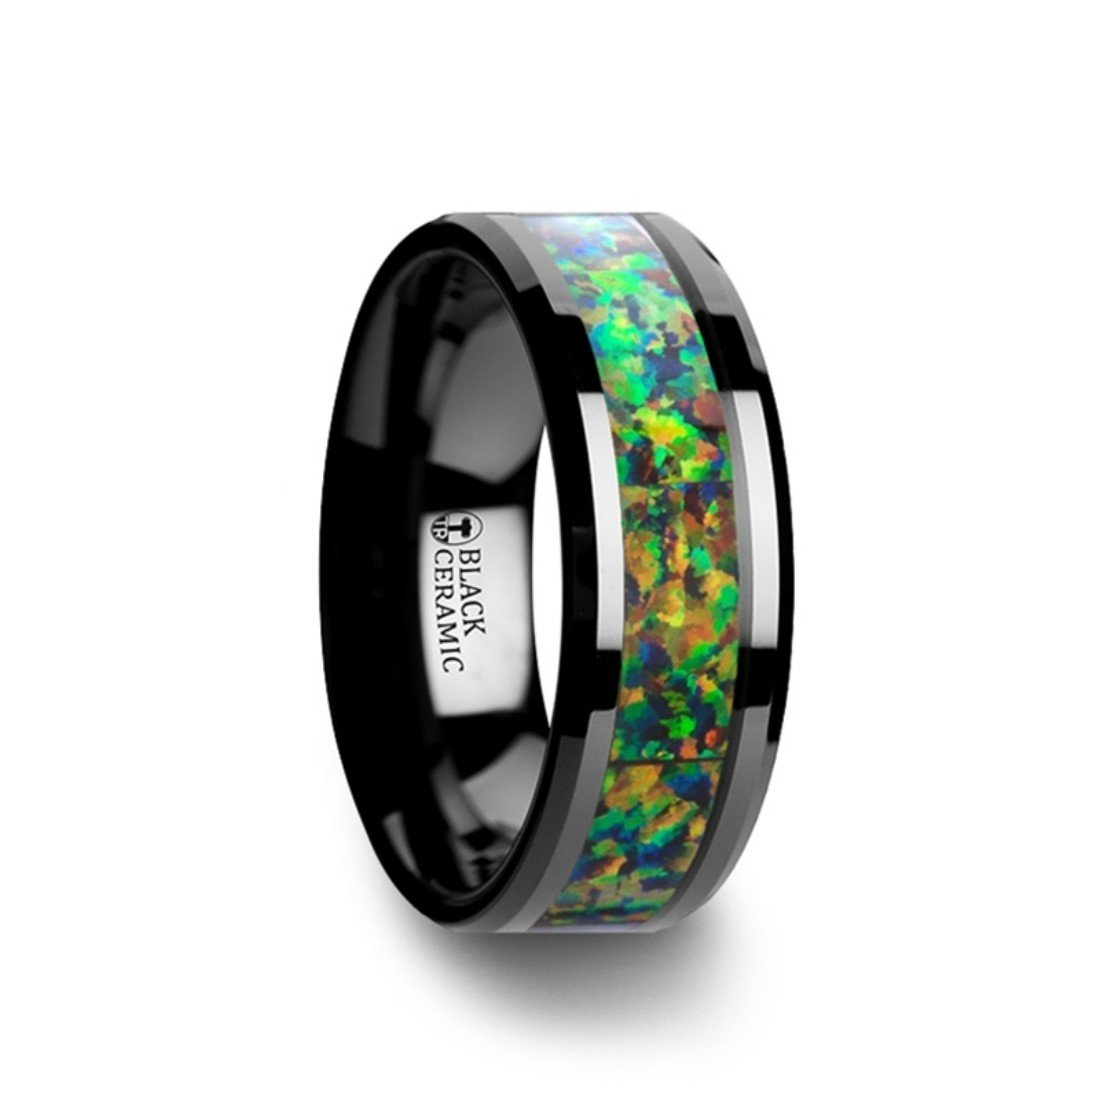 Thorsten Galactic Black Ceramic Wedding Band with Beveled Edges and Blue /& Orange Opal Inlay 8mm Wide from Roy Rose Jewelry